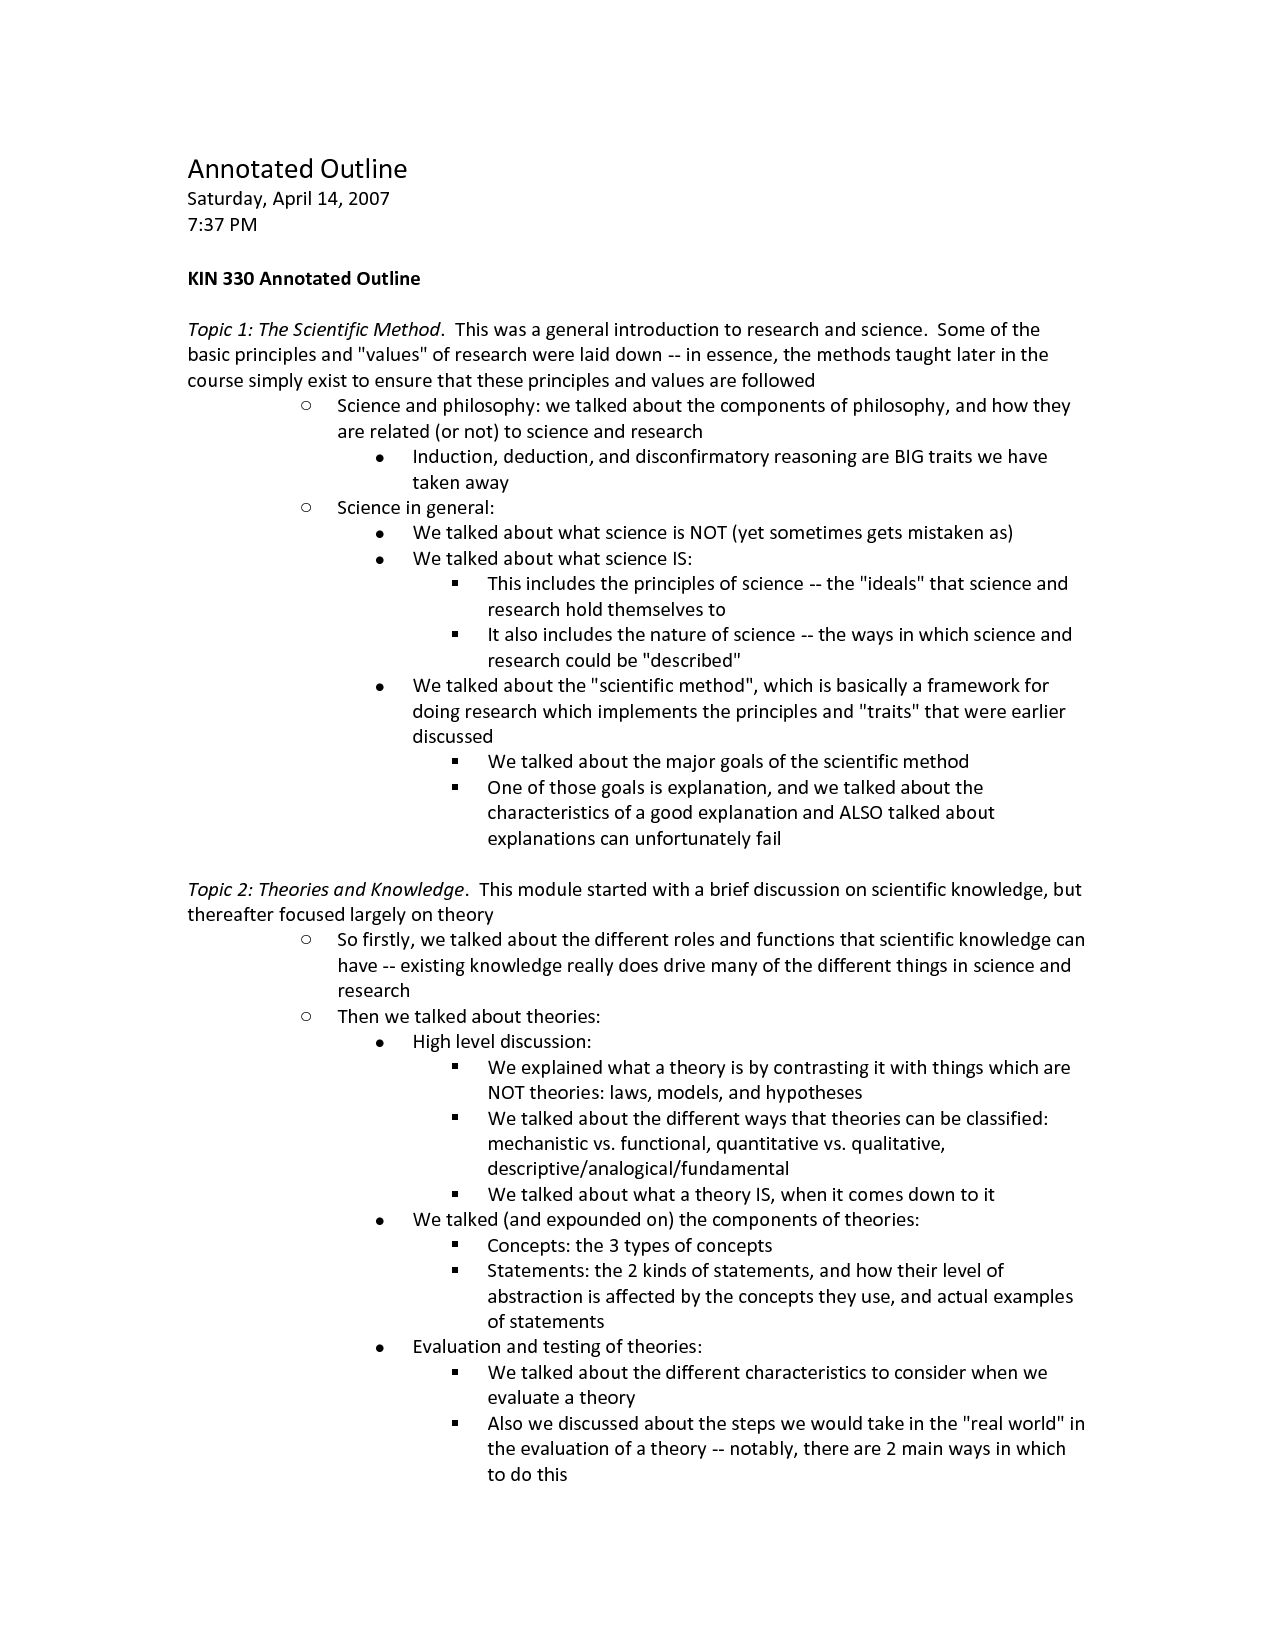 010 Sample Of An Apa Style Research Paper Annotated Outline For 308696 Wonderful A Apa-style Template Example Full